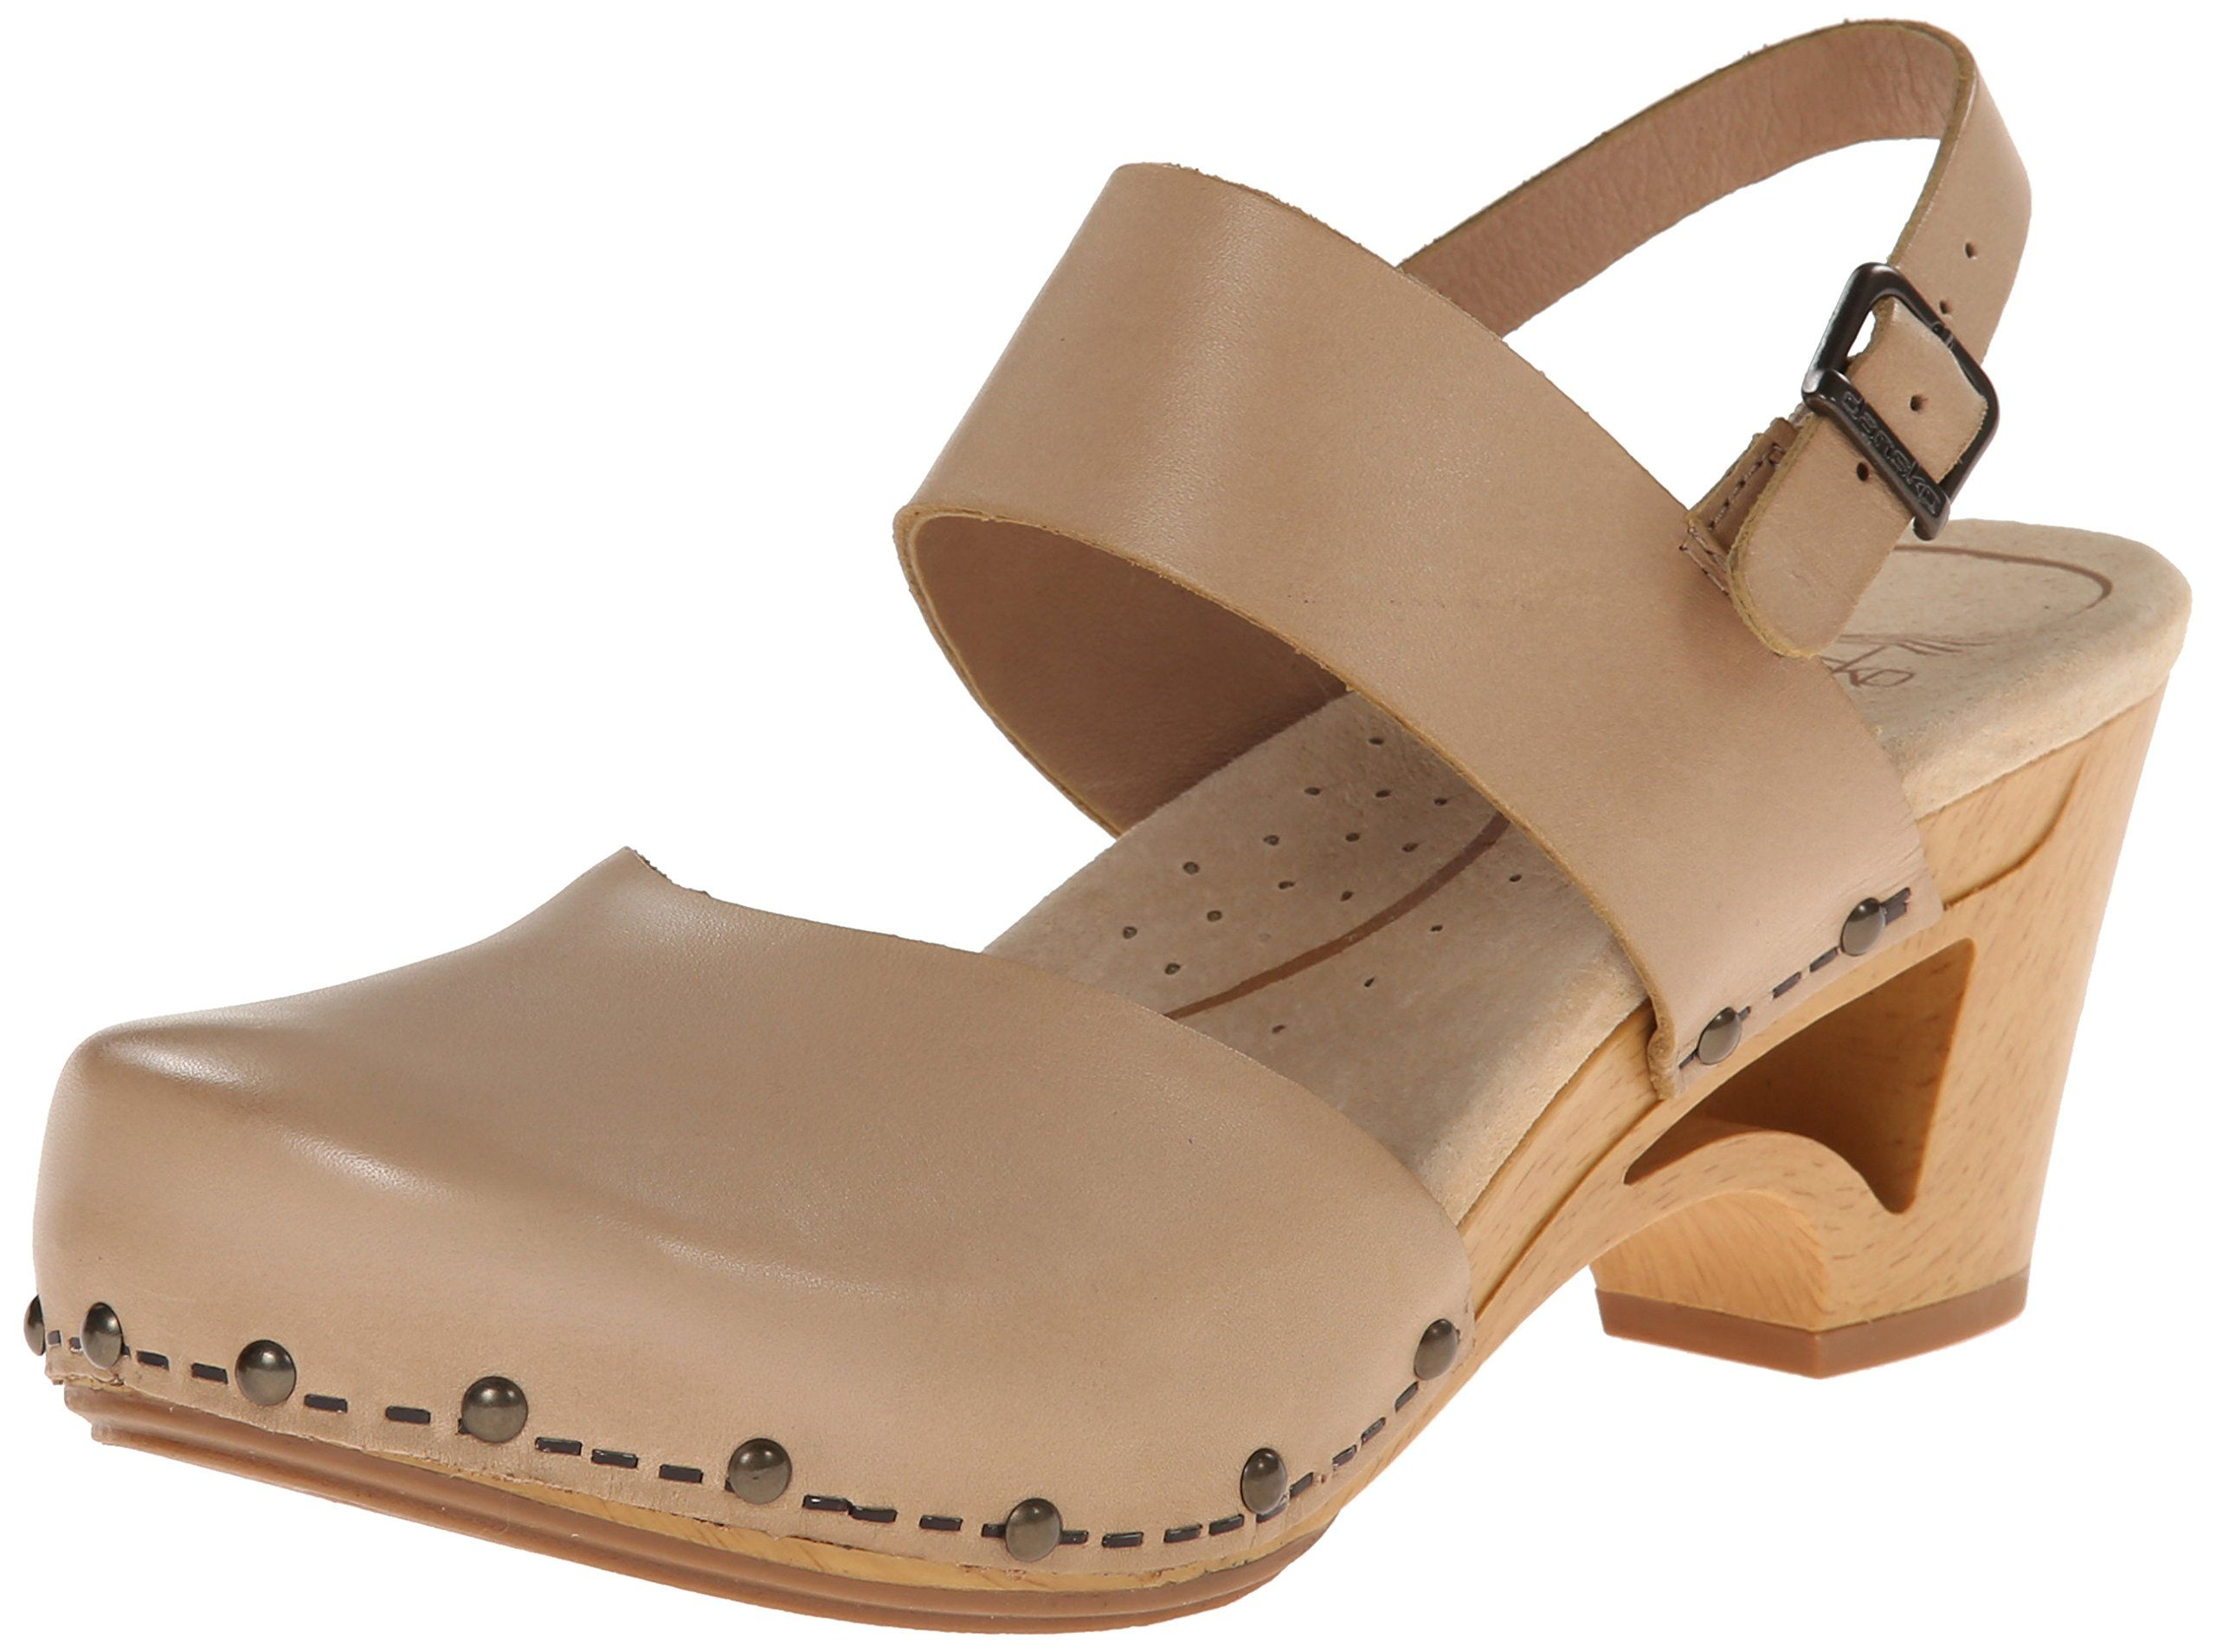 7a0e9f4759d Amazon.com  Dansko Women s Thea Ankle Strap Sandal  Clogs And Mules Shoes   Clothing